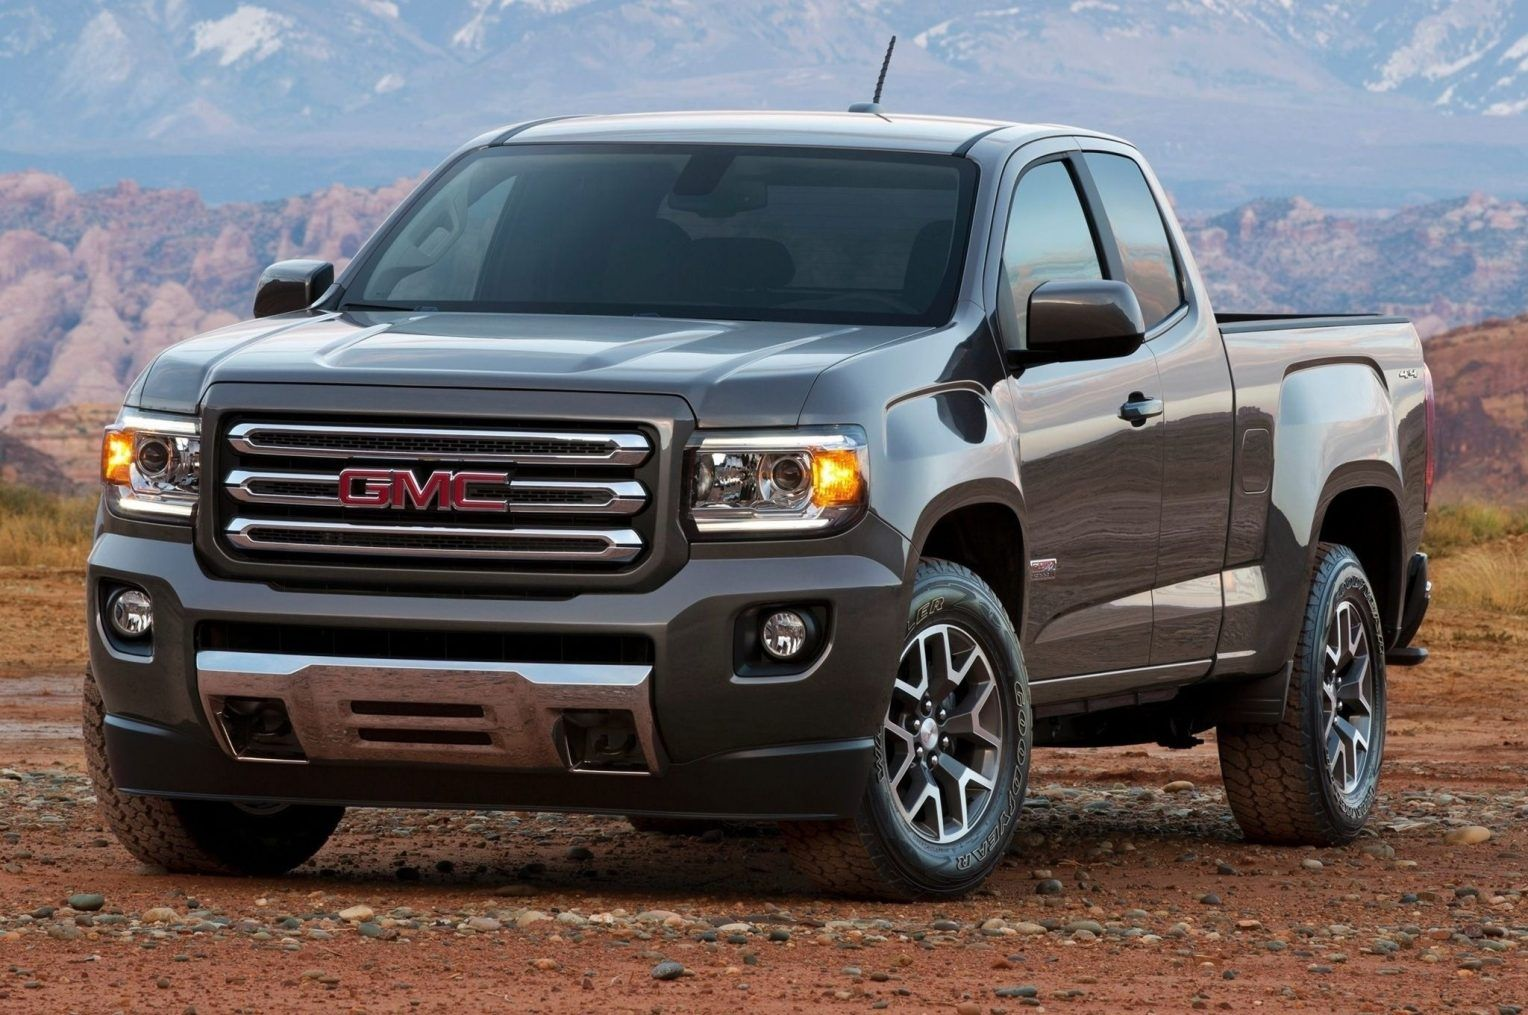 2020 Gmc Canyon Review Interior Redesign Release Date Price And Photos Mobil Truk